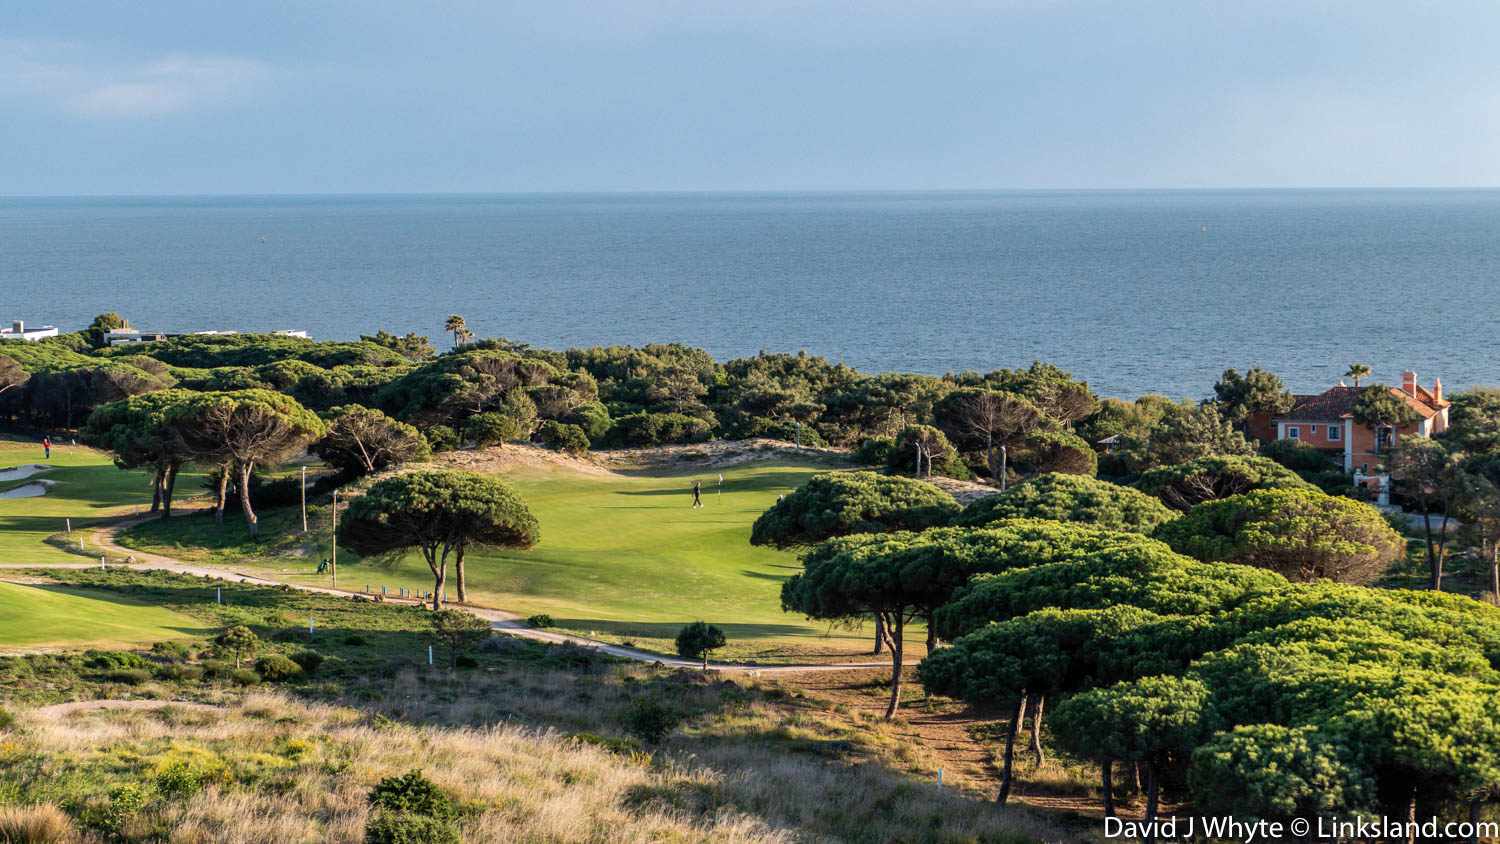 Oitavos Dunes, just one of the stunning links tracks easily accessible from the city of Lisbon